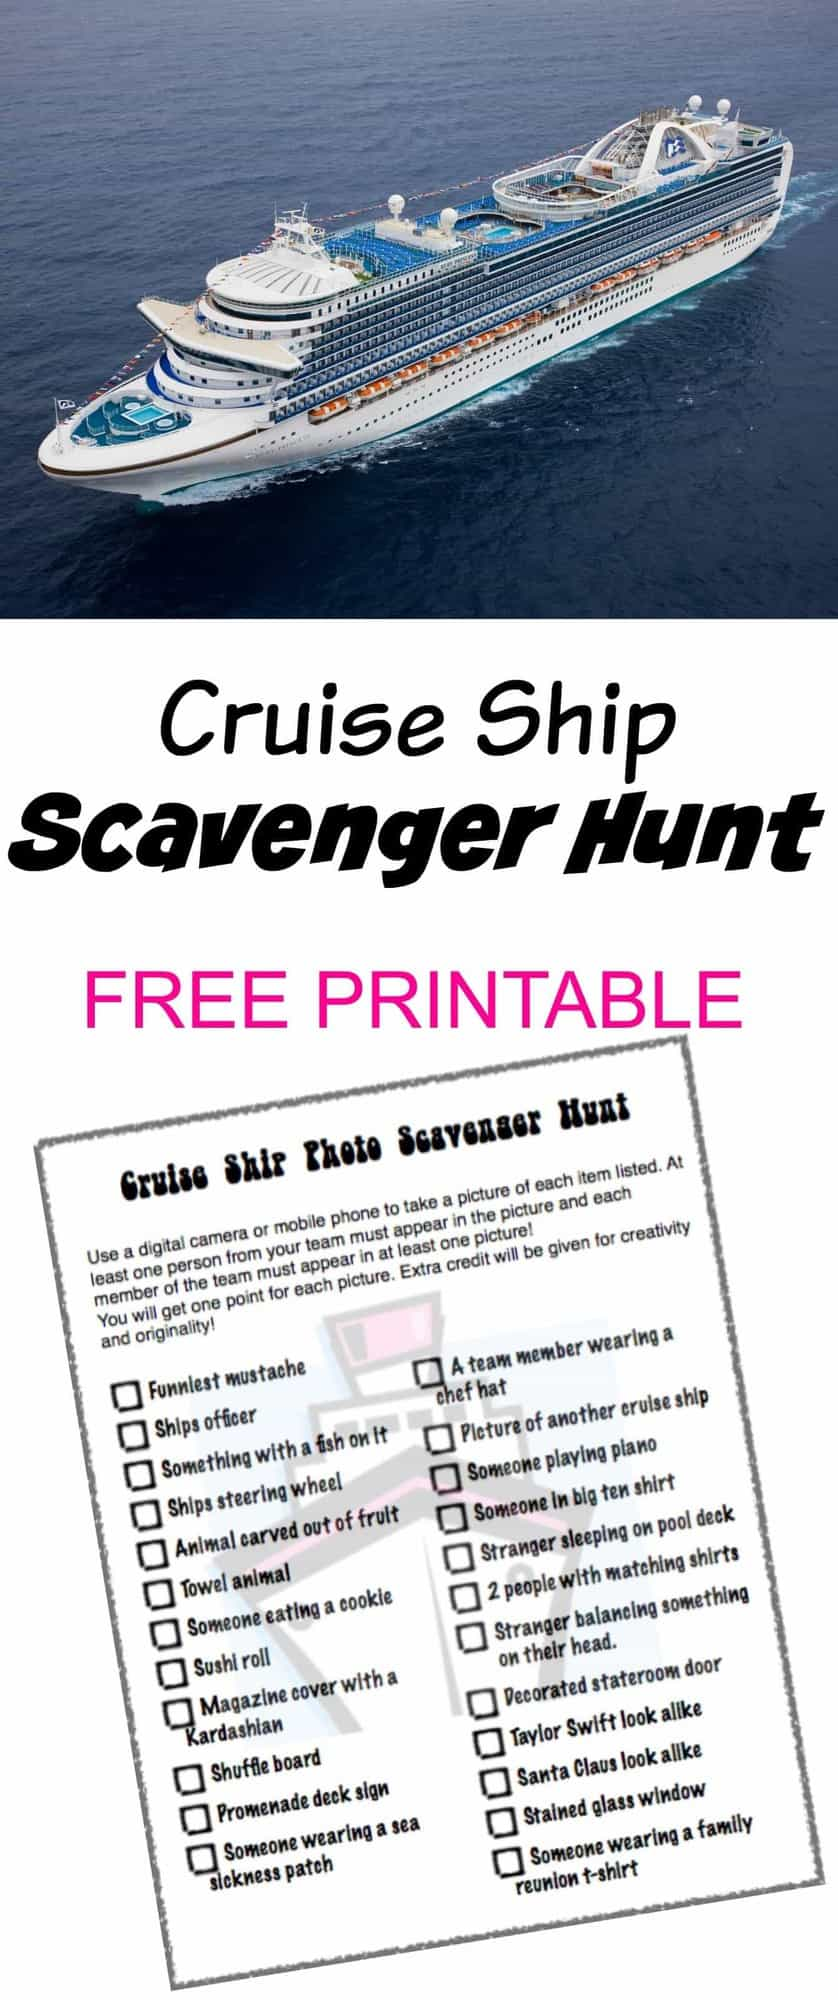 Cruise Ship Scavenger Hunt FREE PRINTABLE Princess